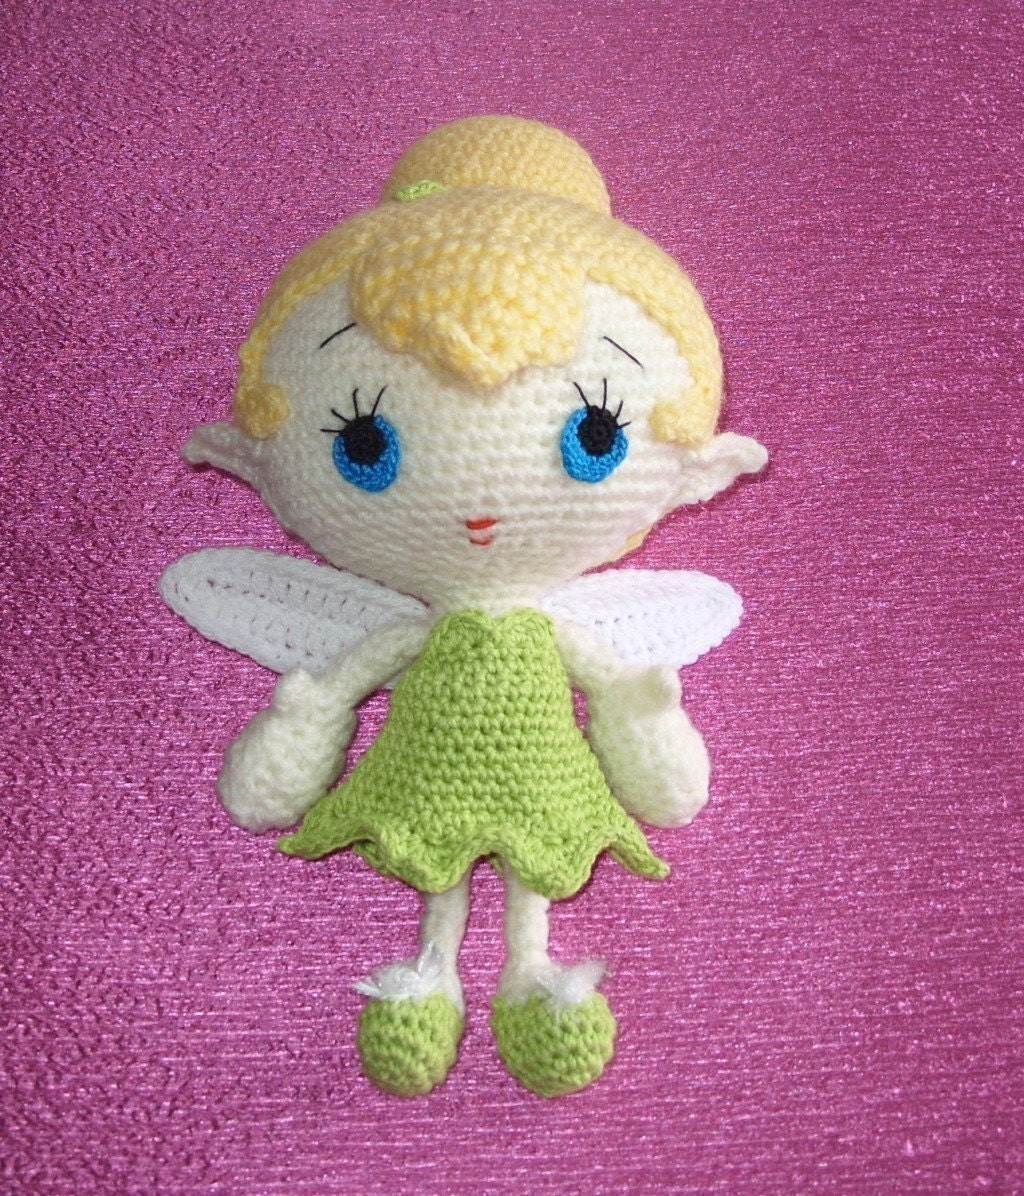 Amigurumi Fairy Free Pattern : EtsyHookers: EtsyHooker of the Week --- CrochetFaery